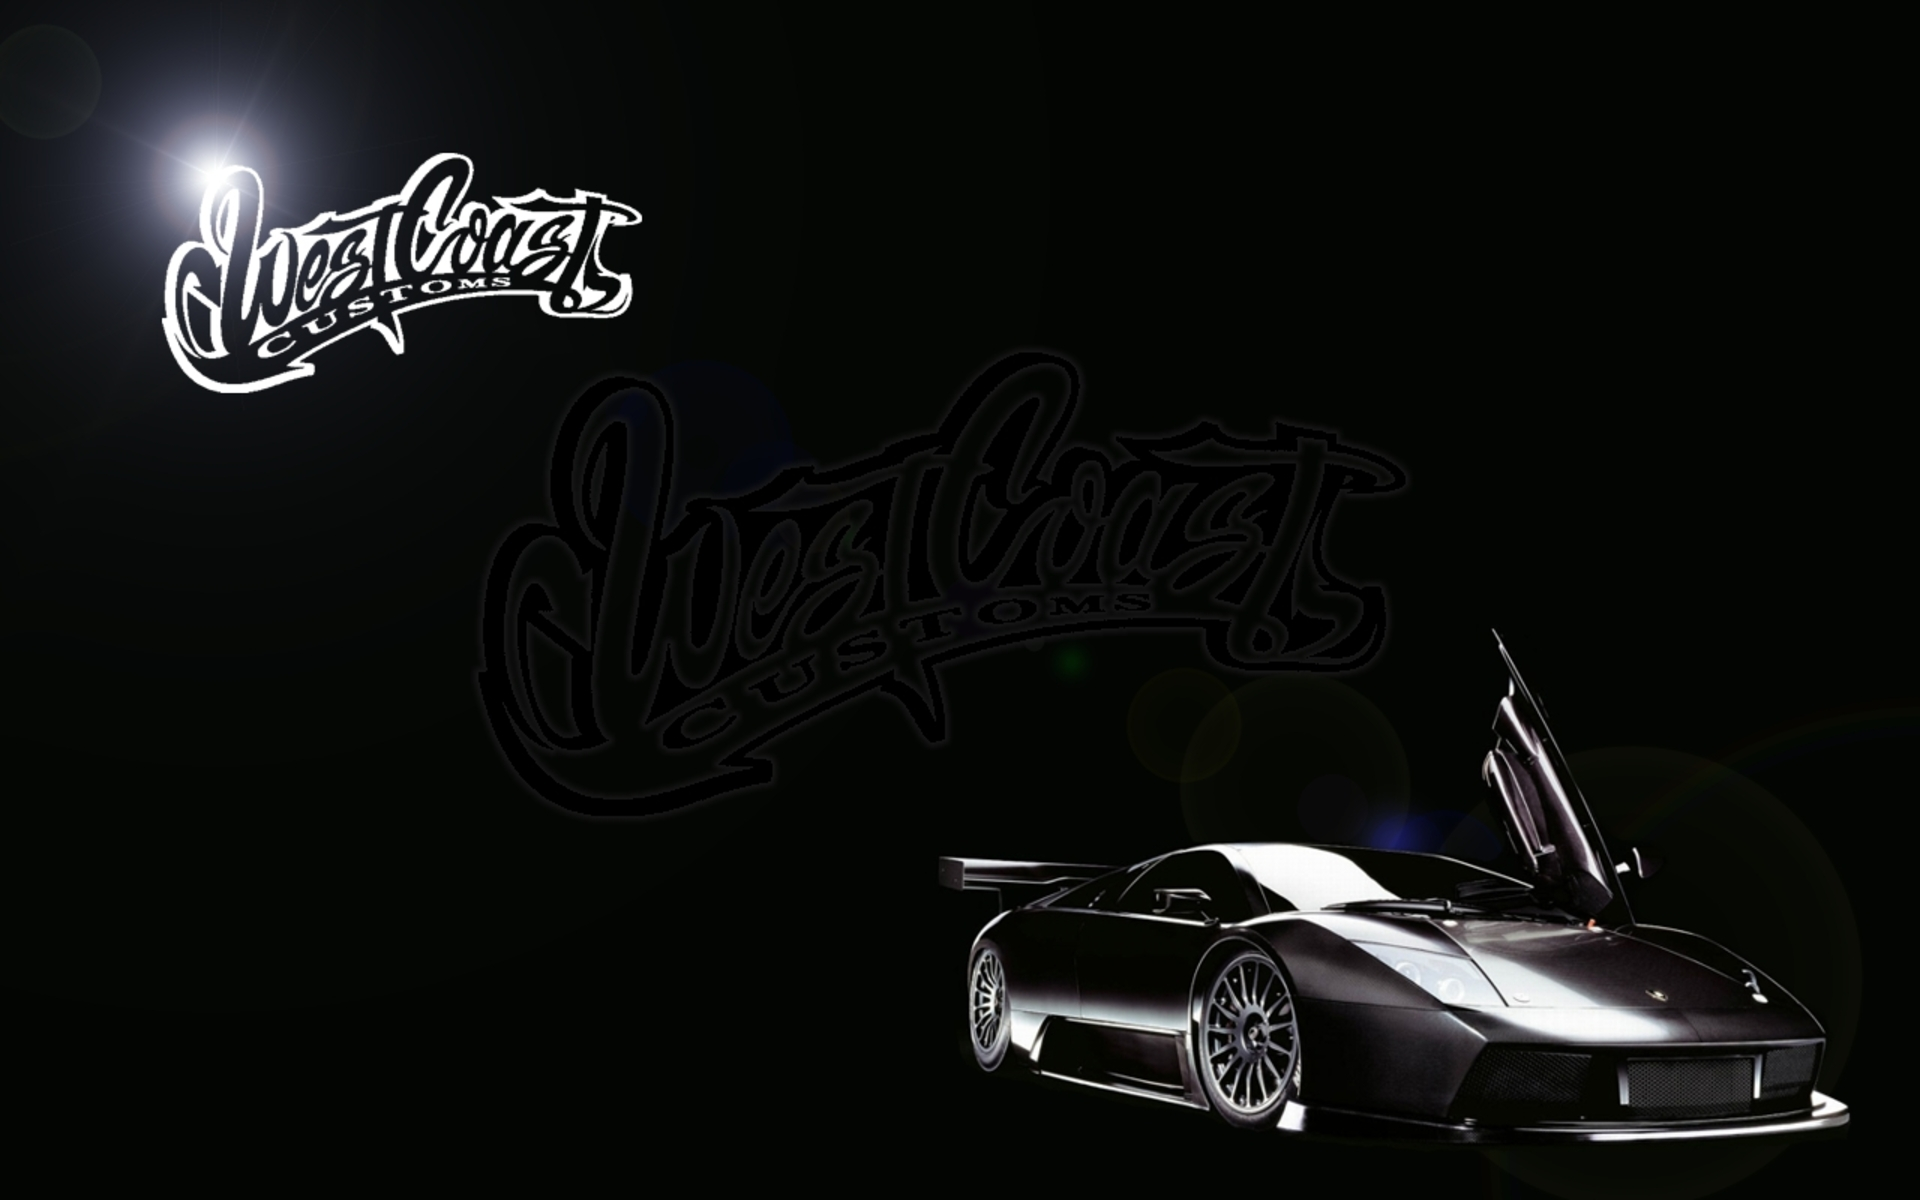 west coast customs 1920x1200